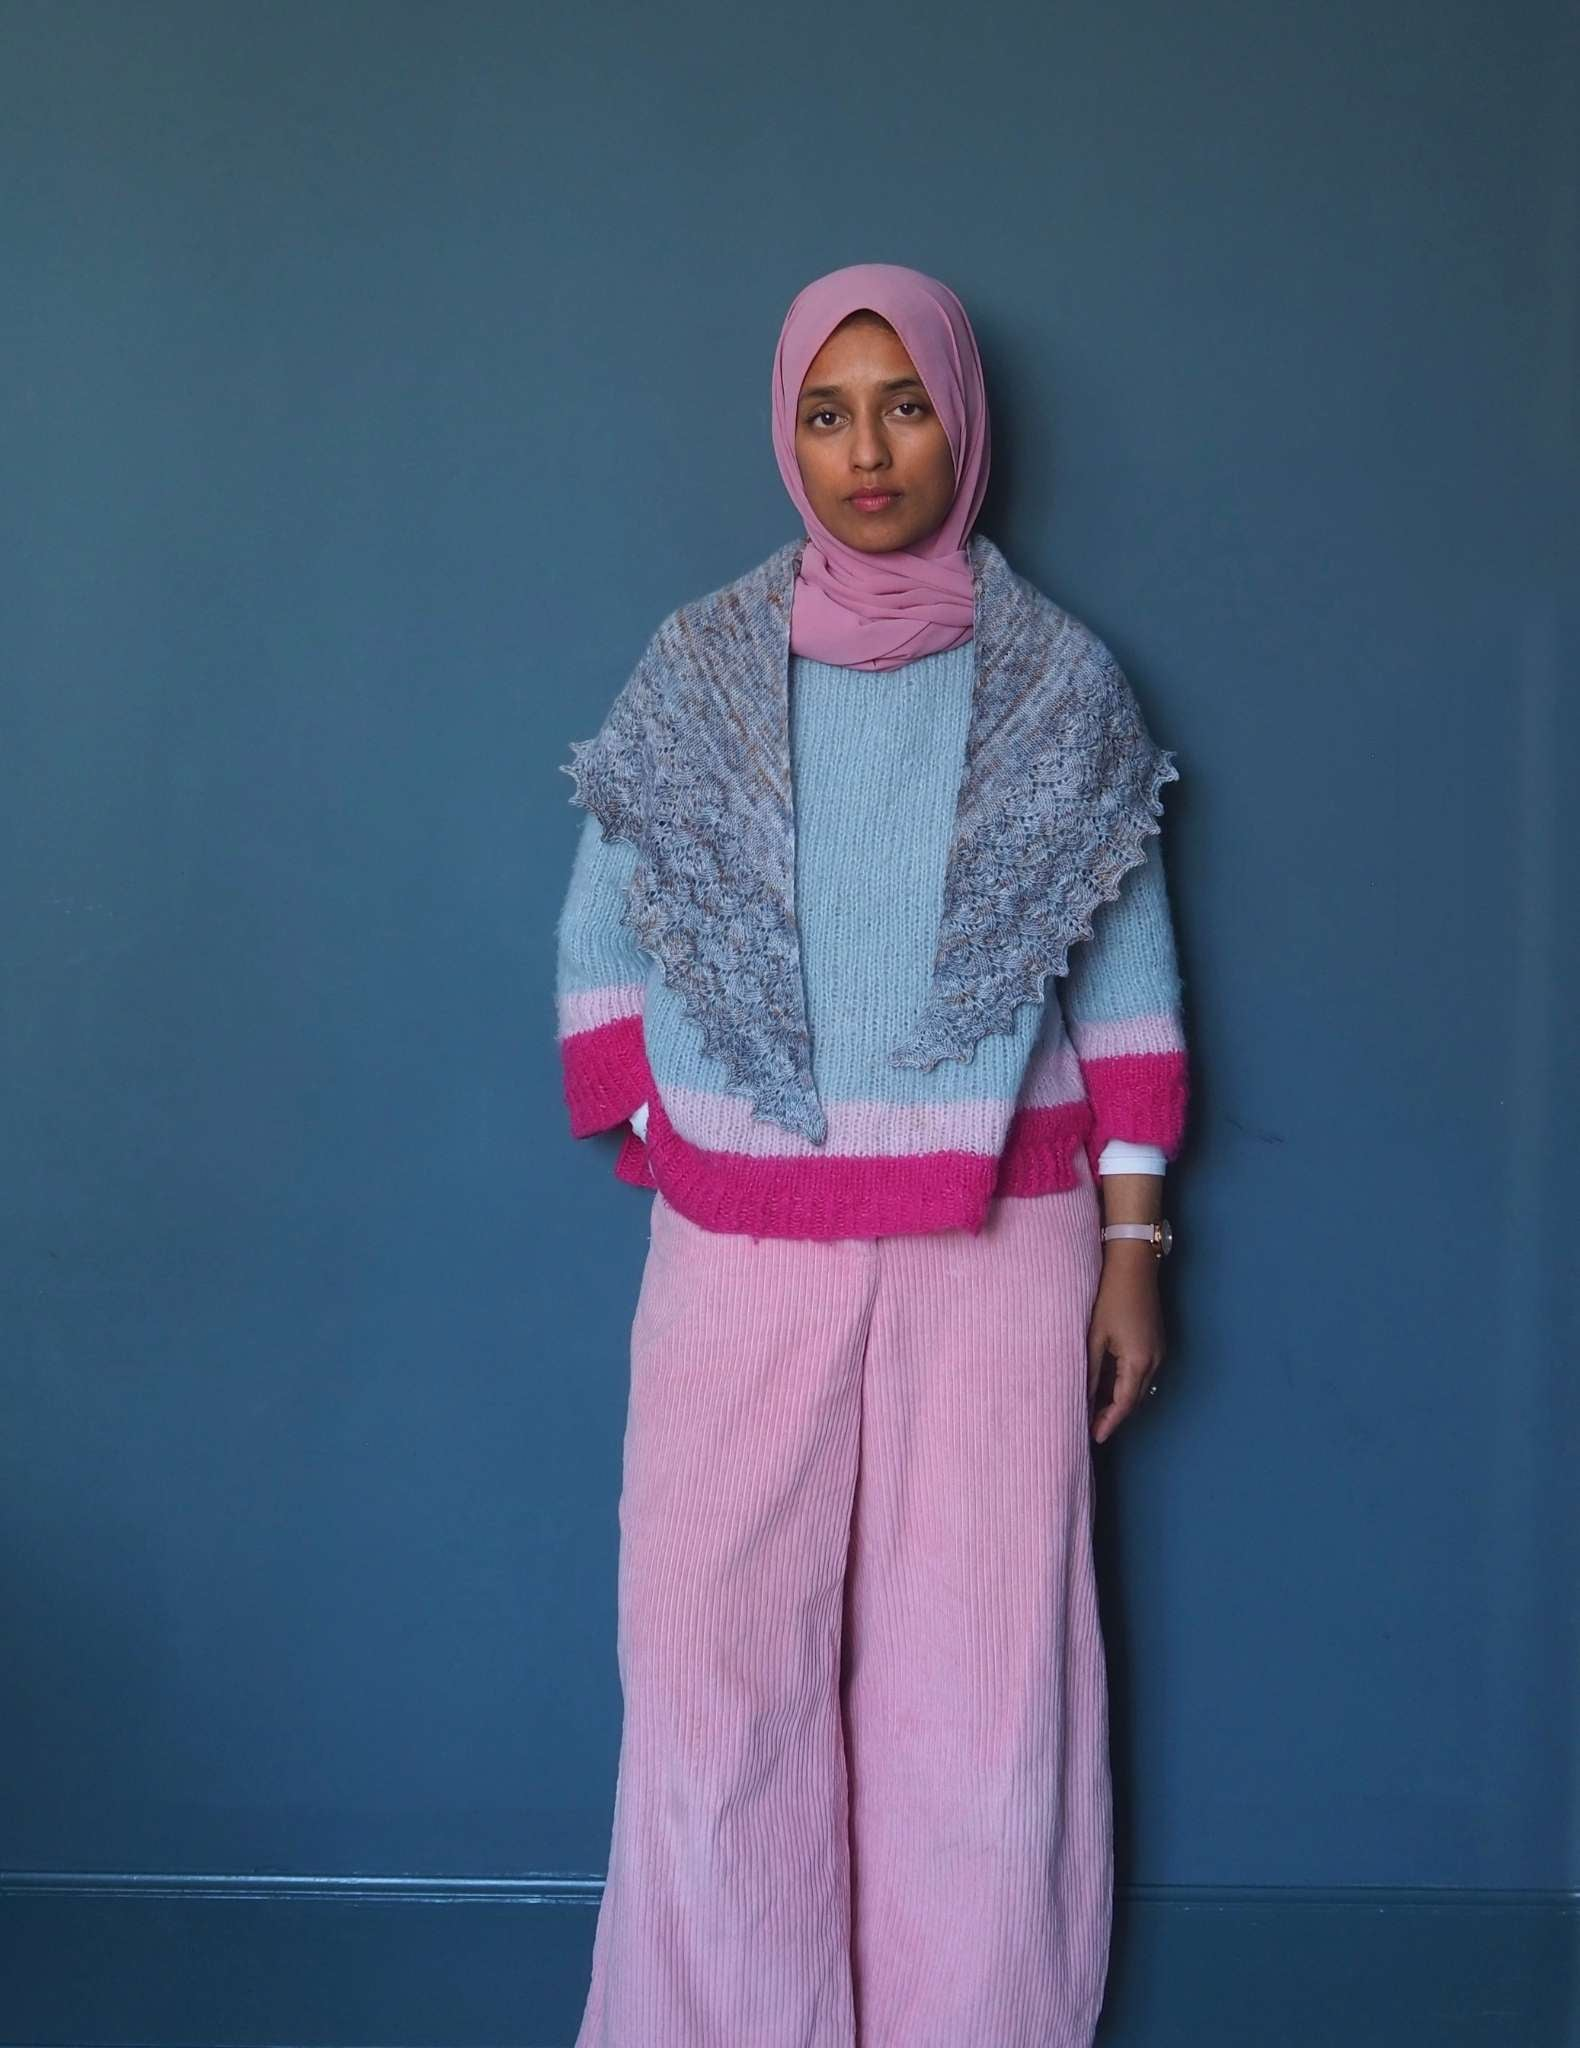 A brown woman in a pink hijab stands in front of a blue background looking straight into the camera. She is wearing a pale pastel jumper in blues and pink, pale pink trousers and a grey blue shawl around her neck with the two points hanging down in front.